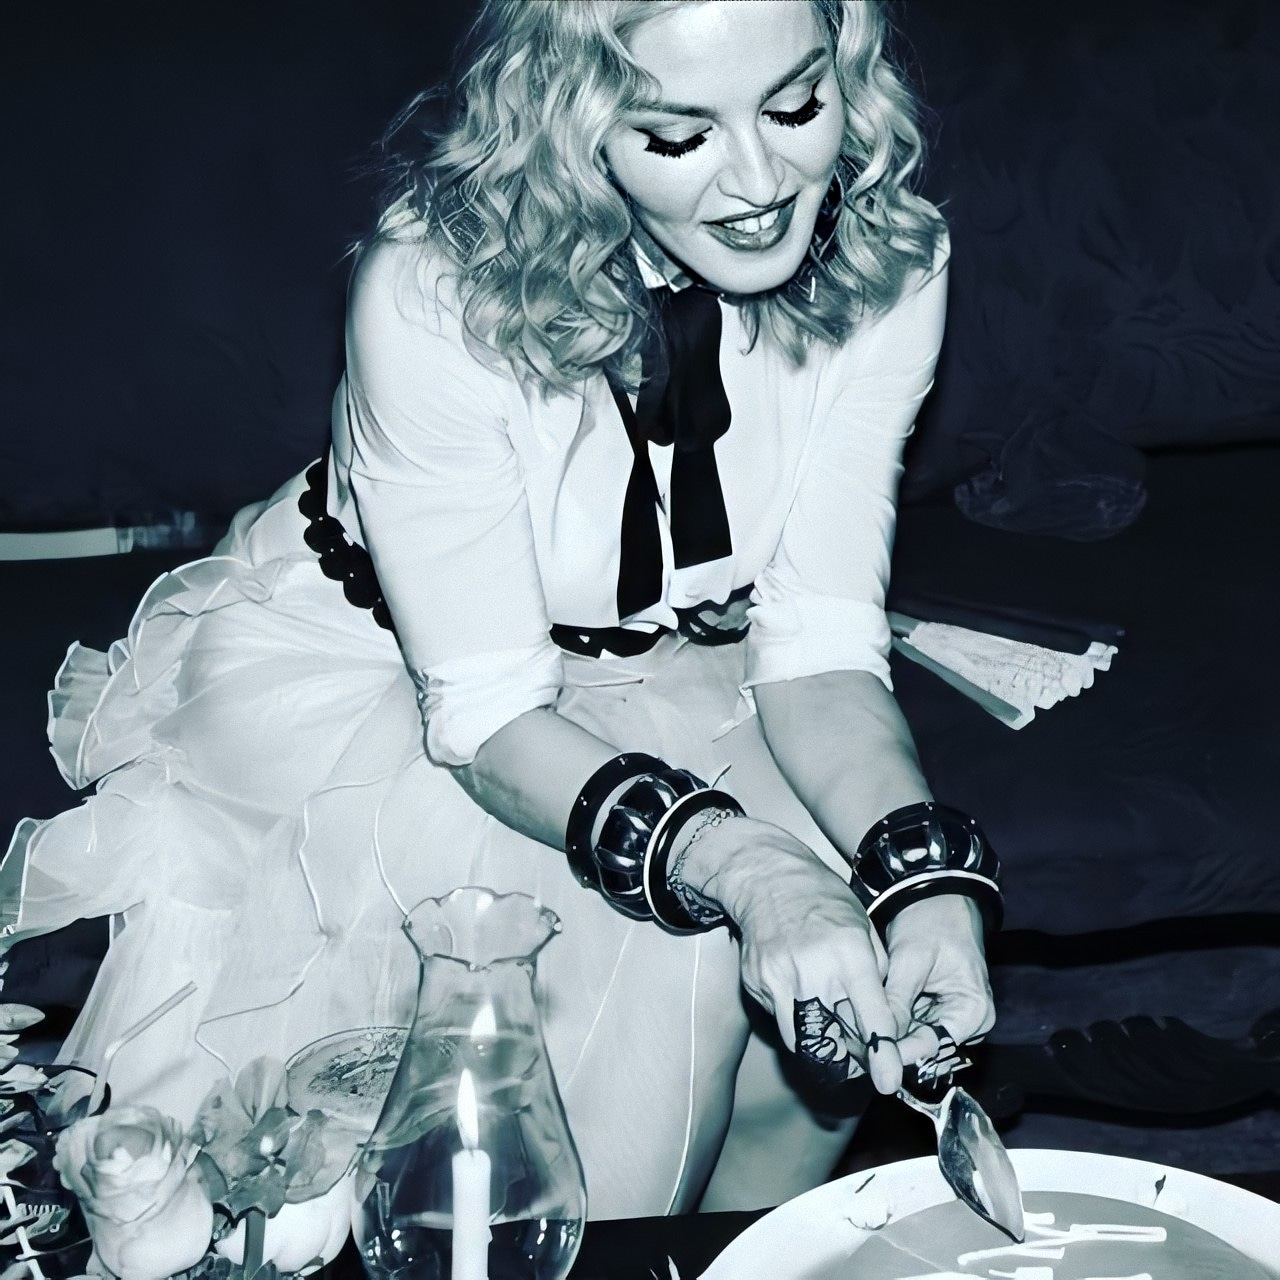 HAPPY BIRTHDAY QUEEN MADONNA! WE LOVE YOU!